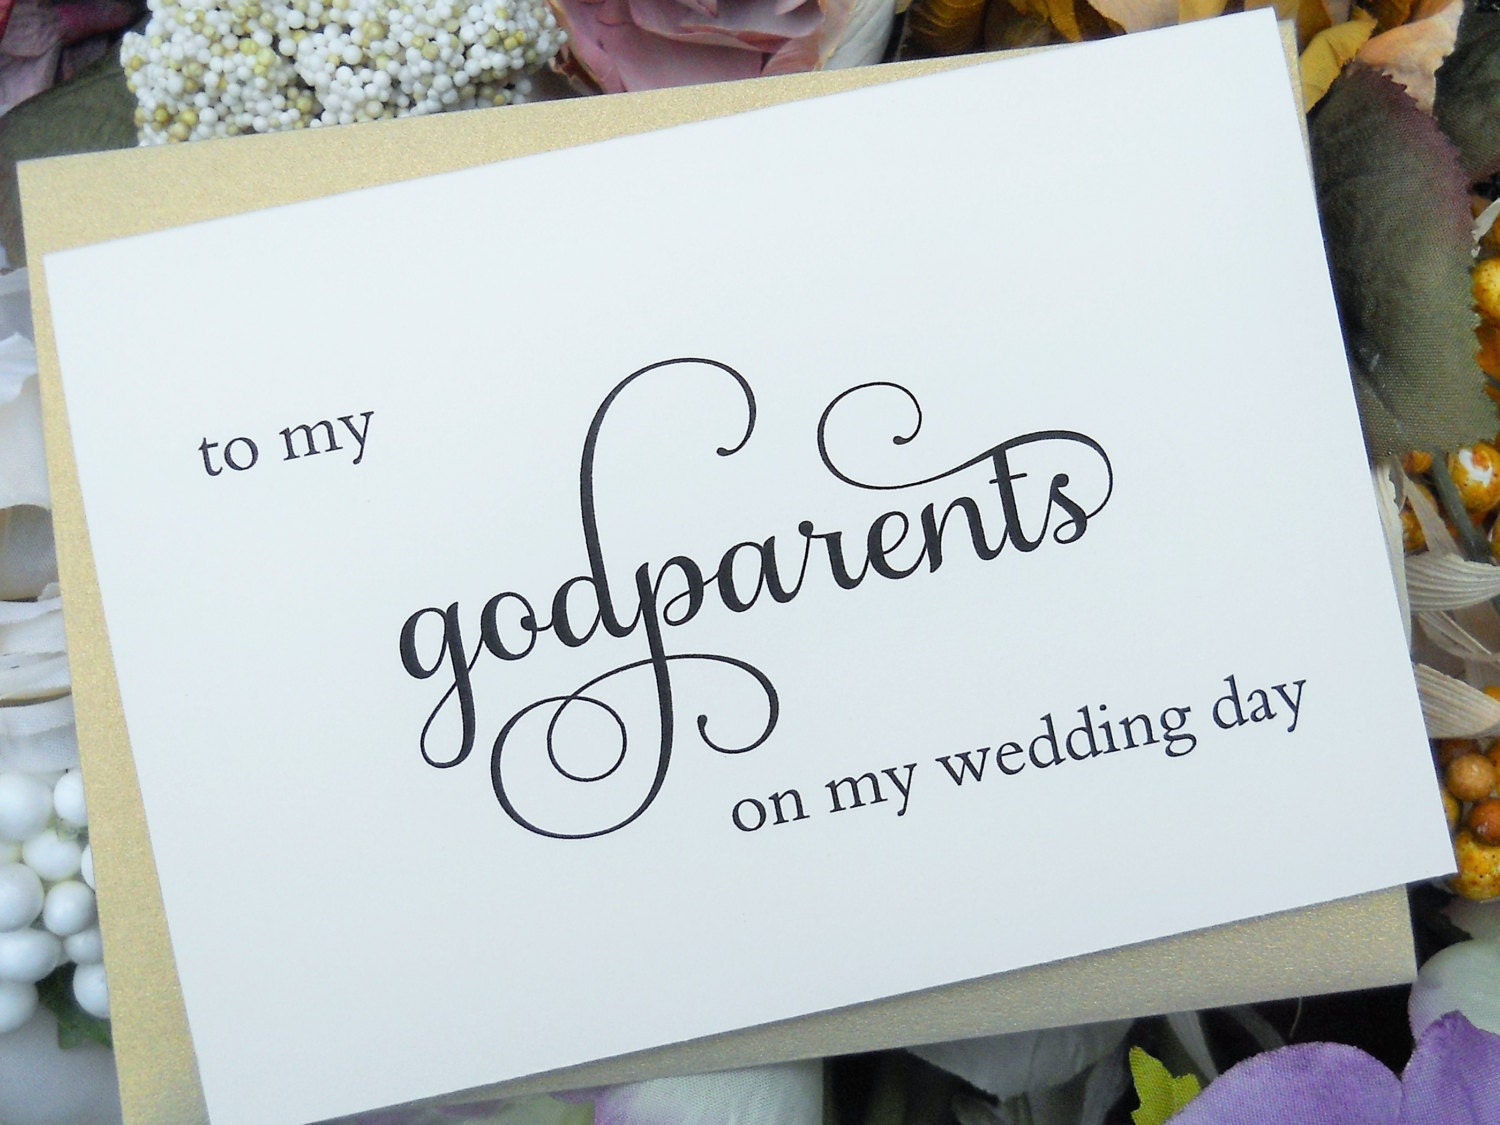 Wedding Gifts For Godparents : TO MY GODPARENTS on my Wedding Day Card Wedding Note Card To